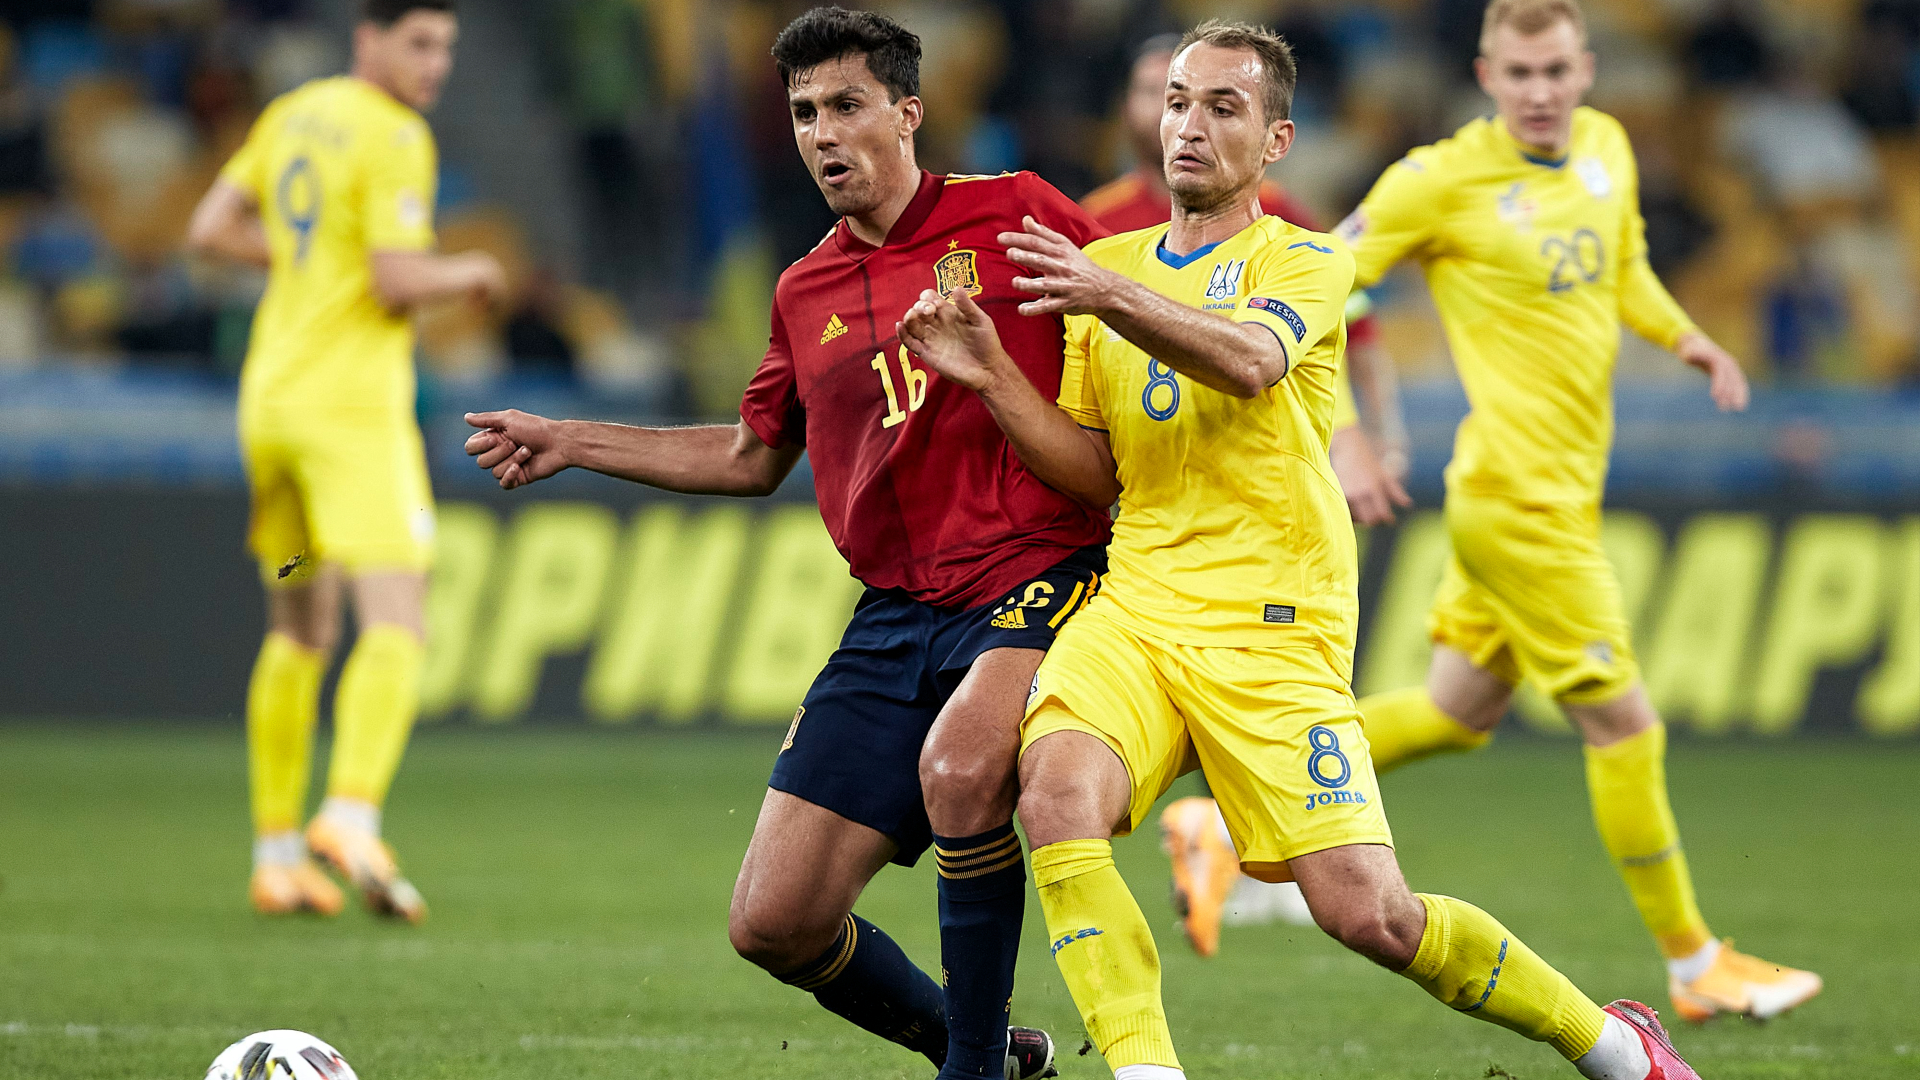 Rodri concerned by striker shortage as Spain fire blanks in loss at Ukraine